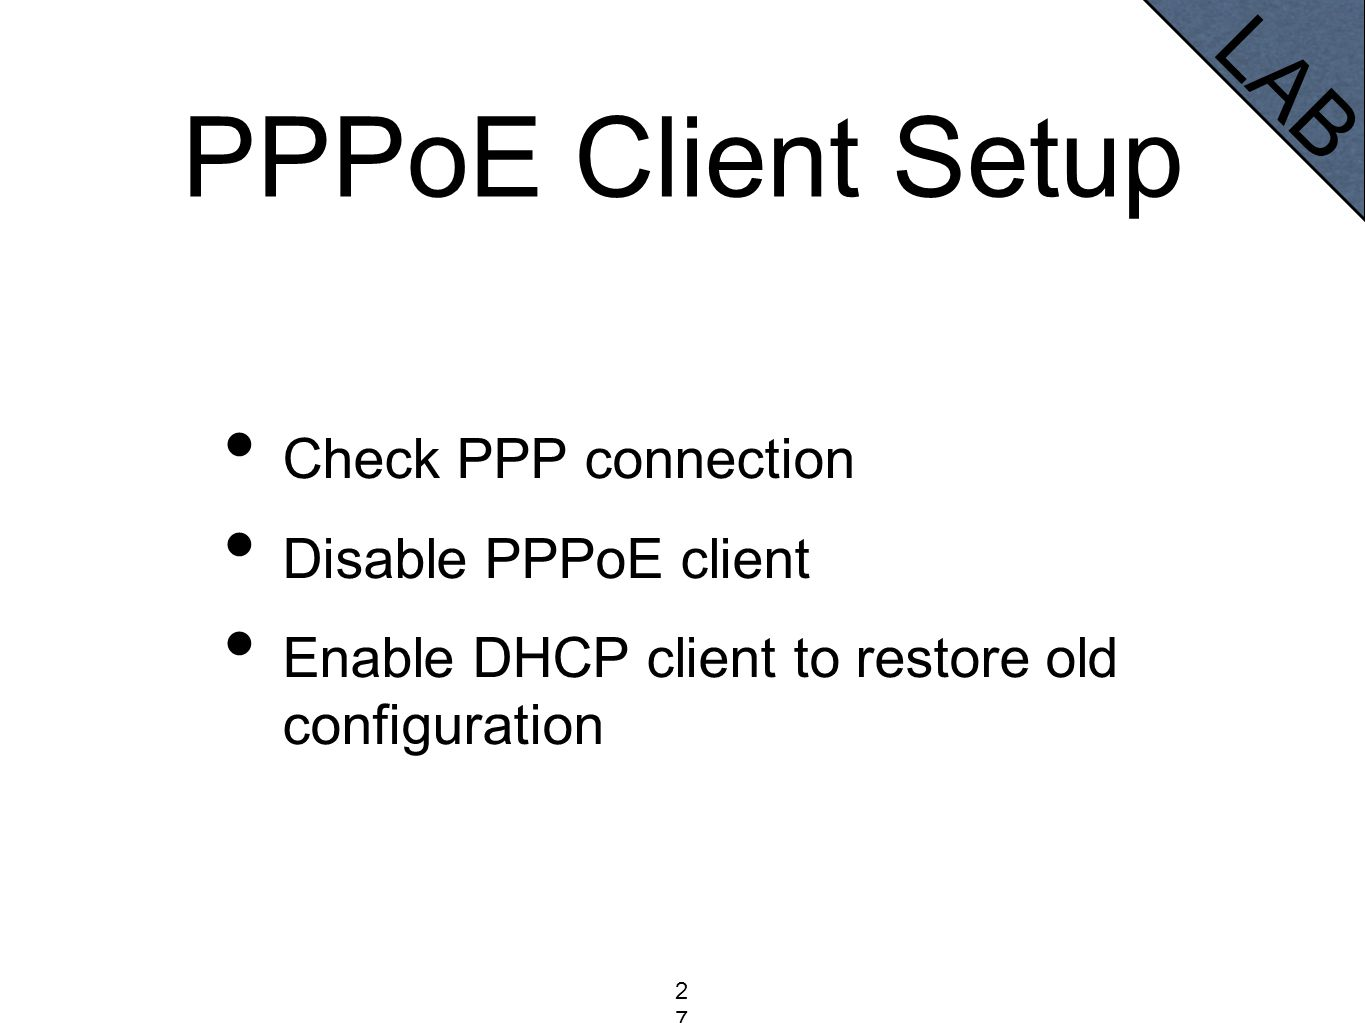 PPPoE Client Setup Check PPP connection Disable PPPoE client Enable DHCP client to restore old configuration LAB 271271271